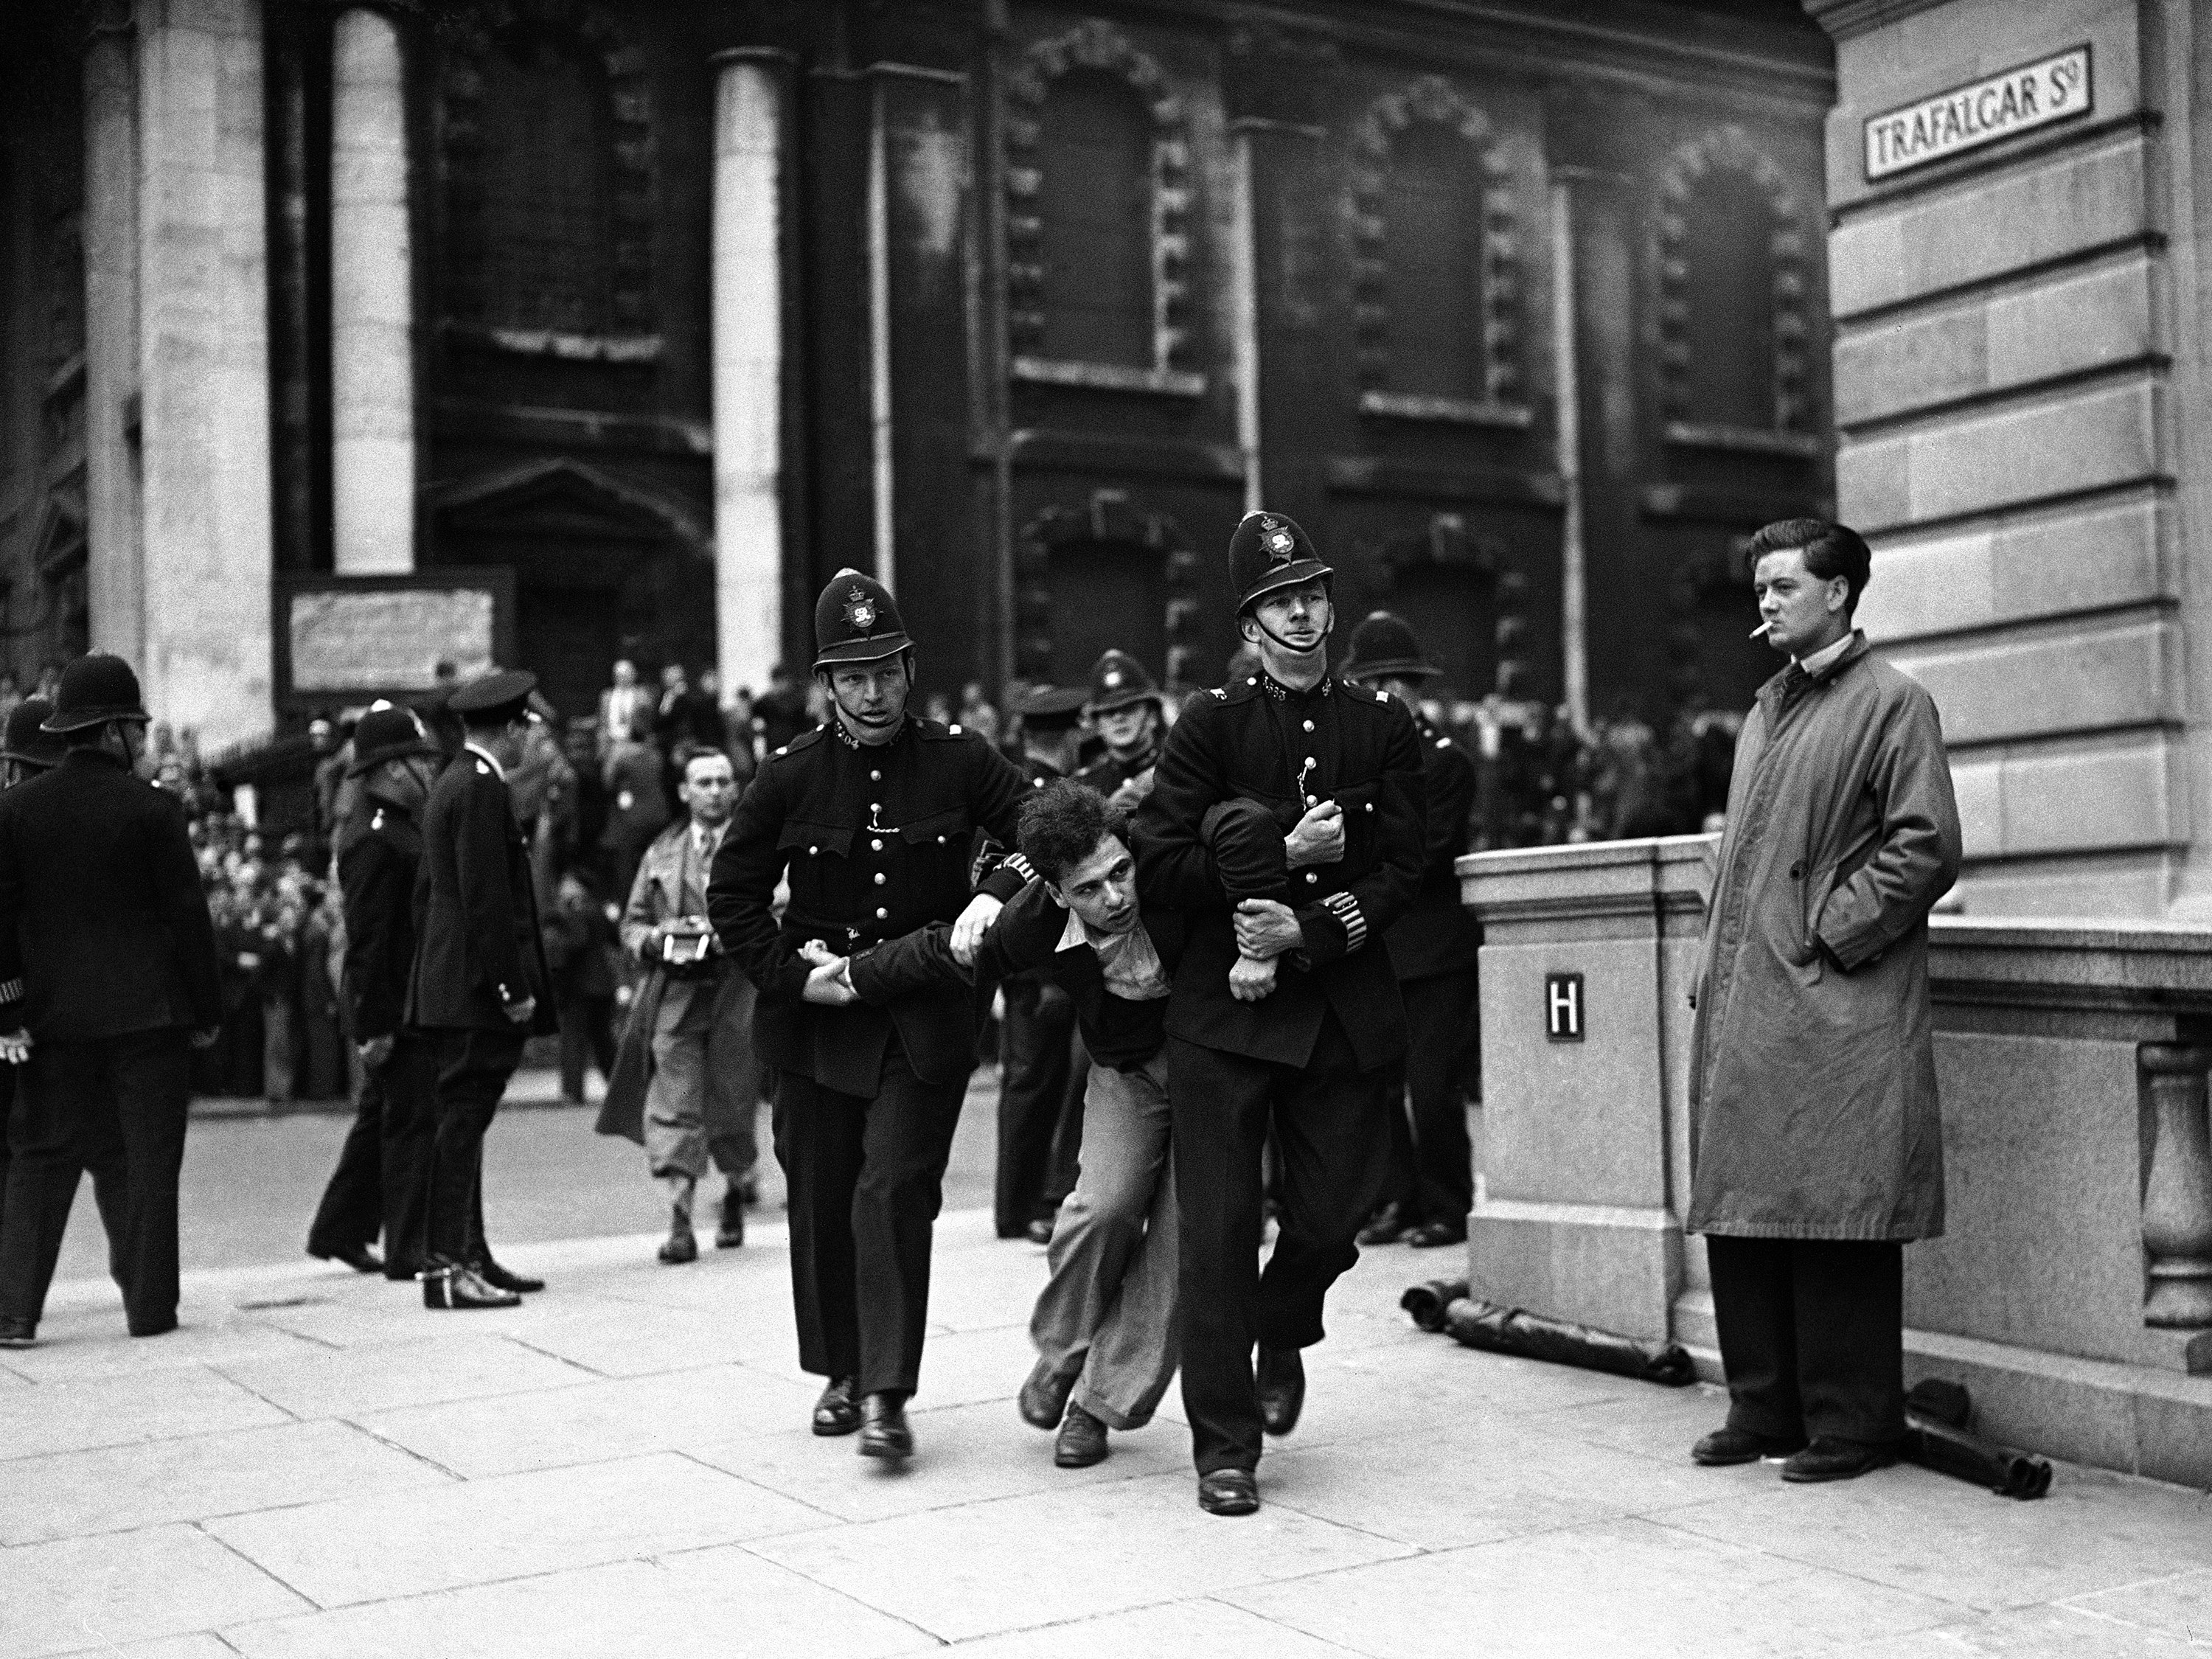 demonstrator struggling with police as the fascists from Kentish Town, led by Sir Oswald Mosley, marched into Trafalgar Square for their meeting on July 4, 1937